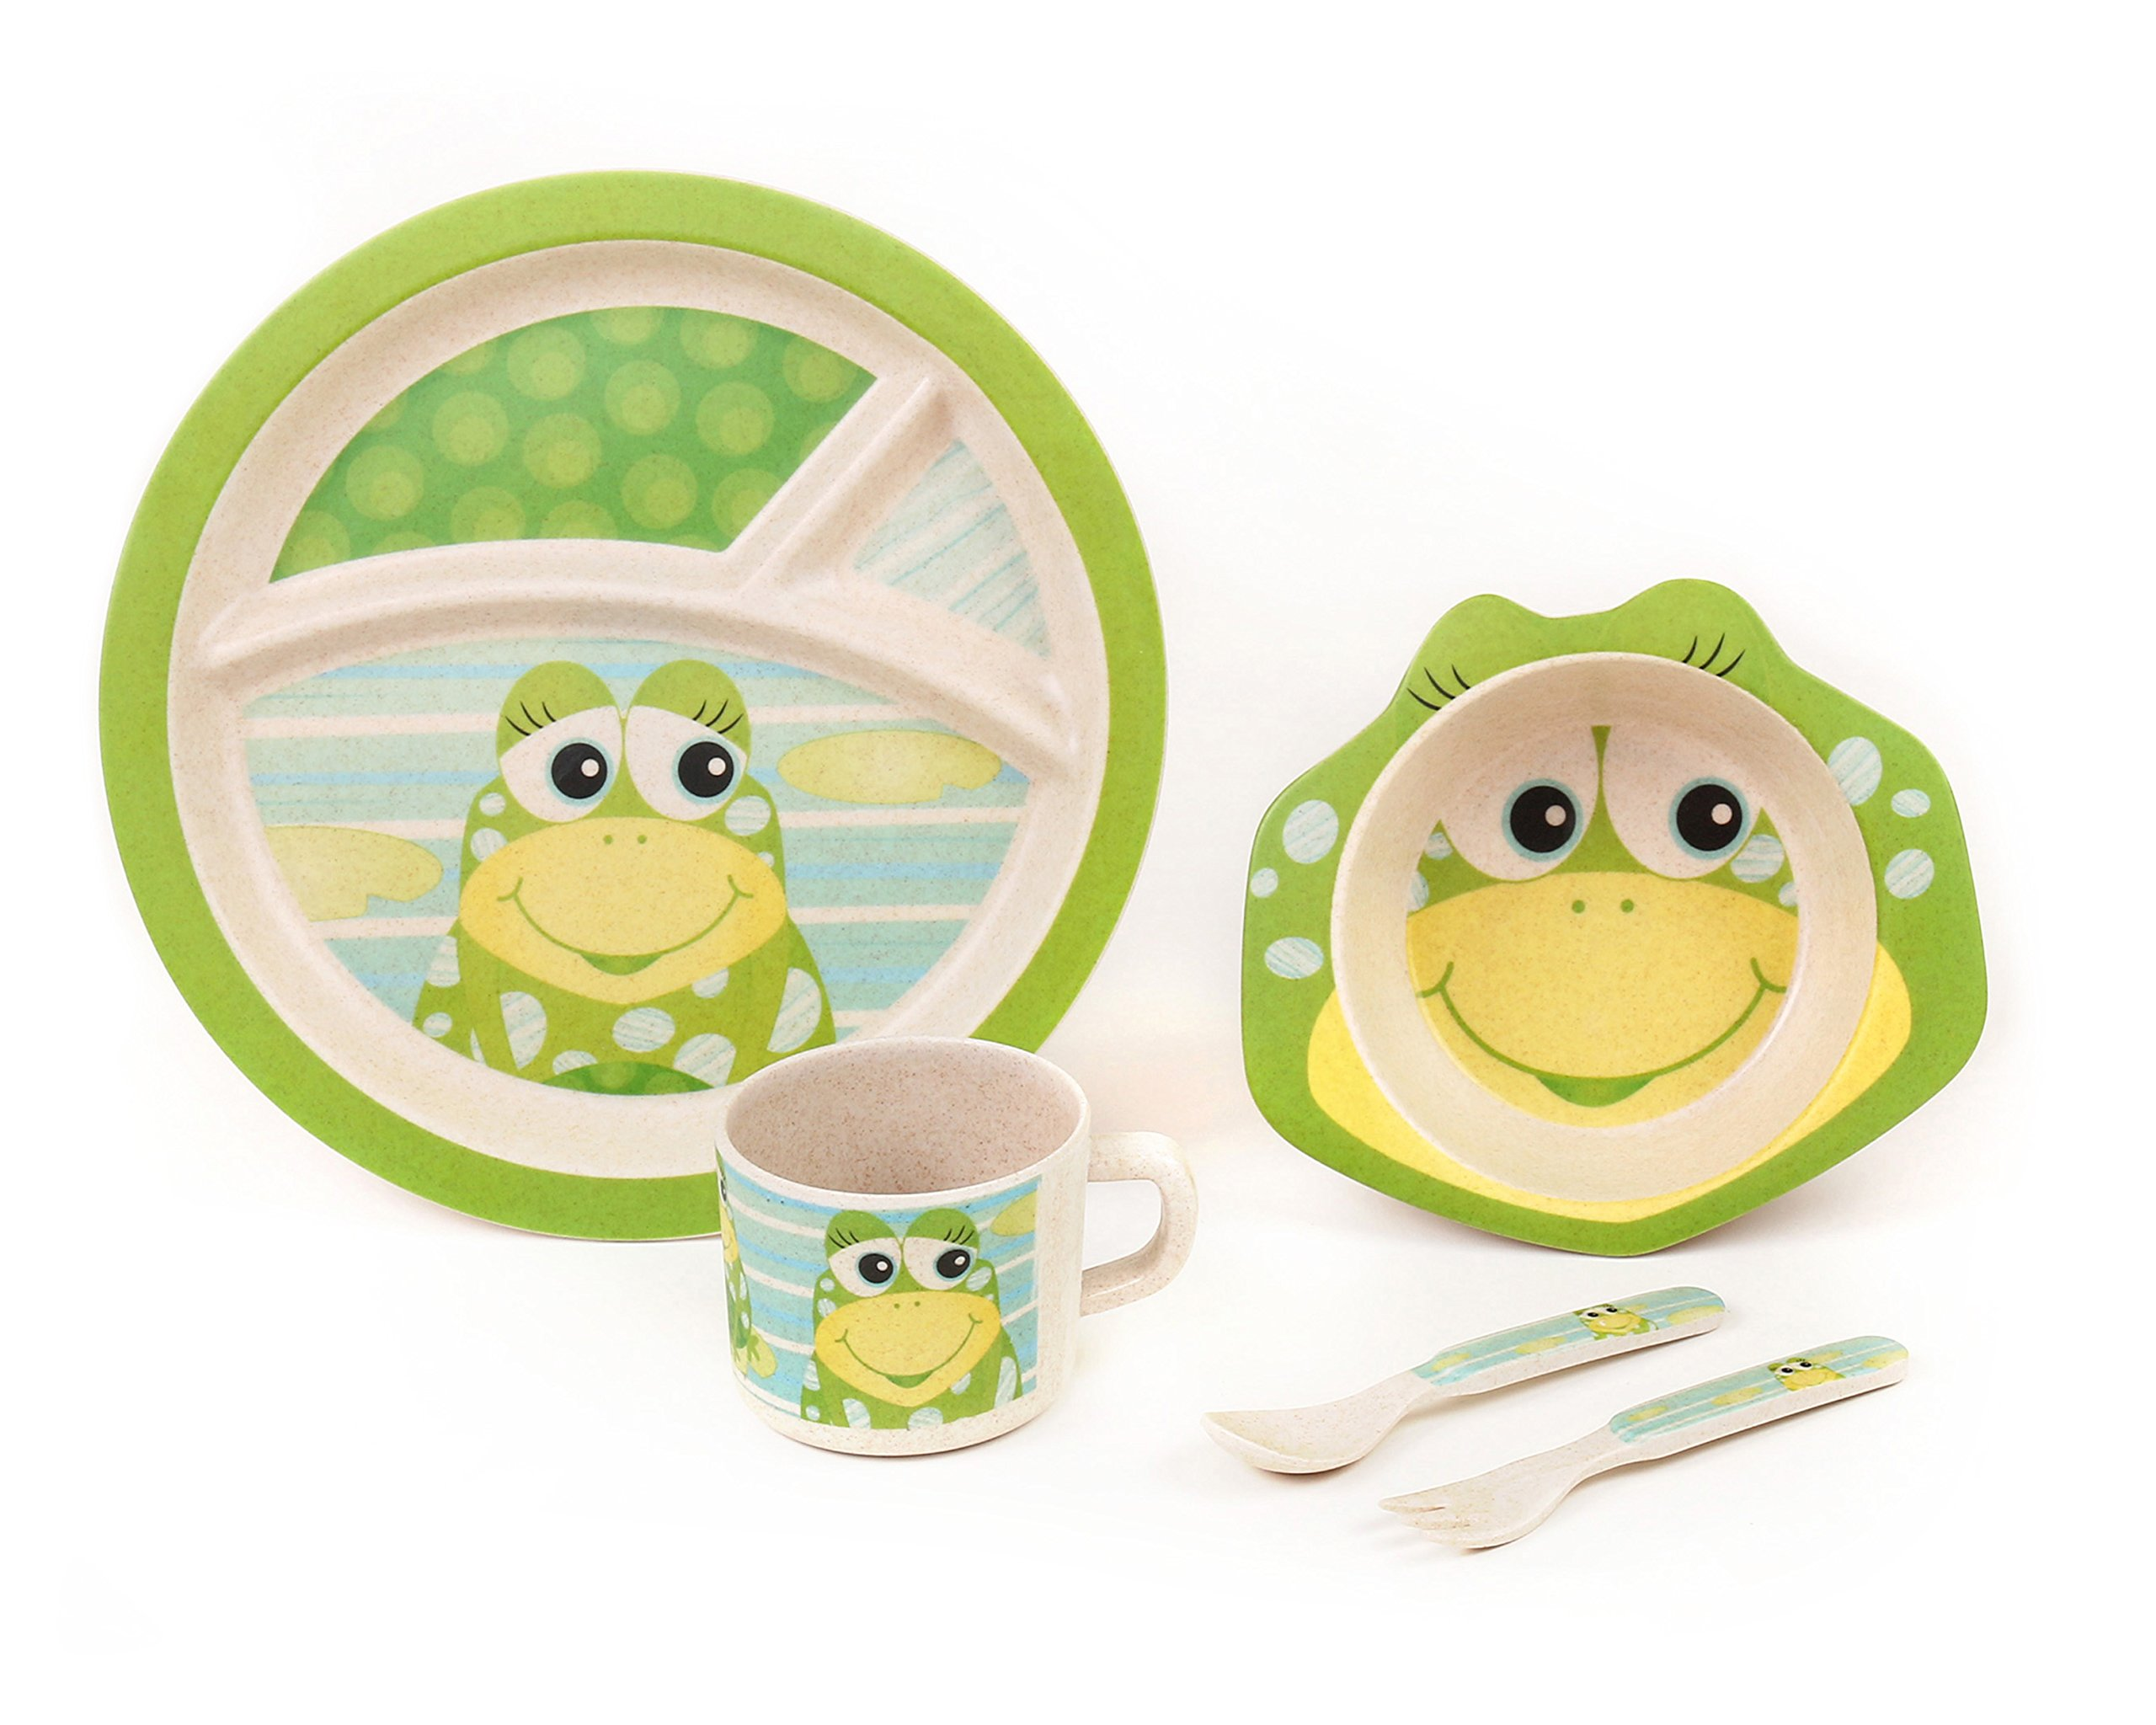 BAMBOO KIDS Meal Set   Plate Set   Toddler Dinner Set   Eco-Friendly Bamboo Dishes   Food-Safe Feeding Set for Toddlers and Little Kids   Boys and Girls   Frog Character by Green Frog Friends